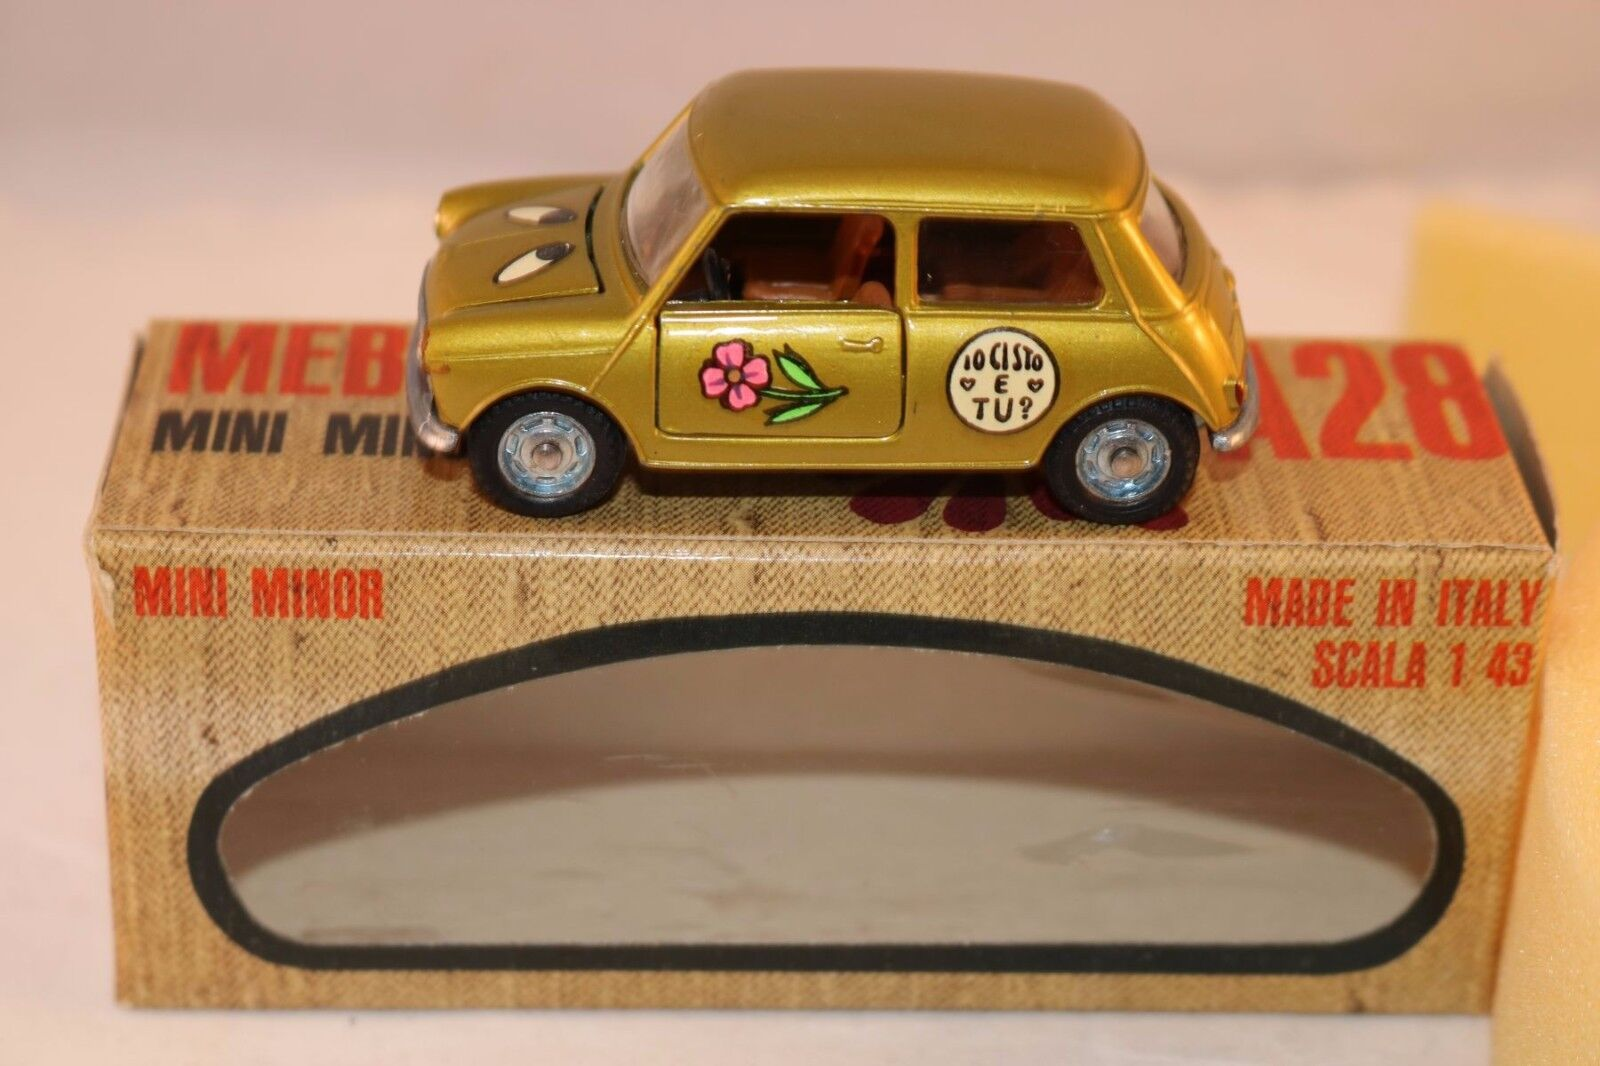 Mebetoys A28 A 28 Mini Minor  Flower Power  lime gold MIB raro very scarce